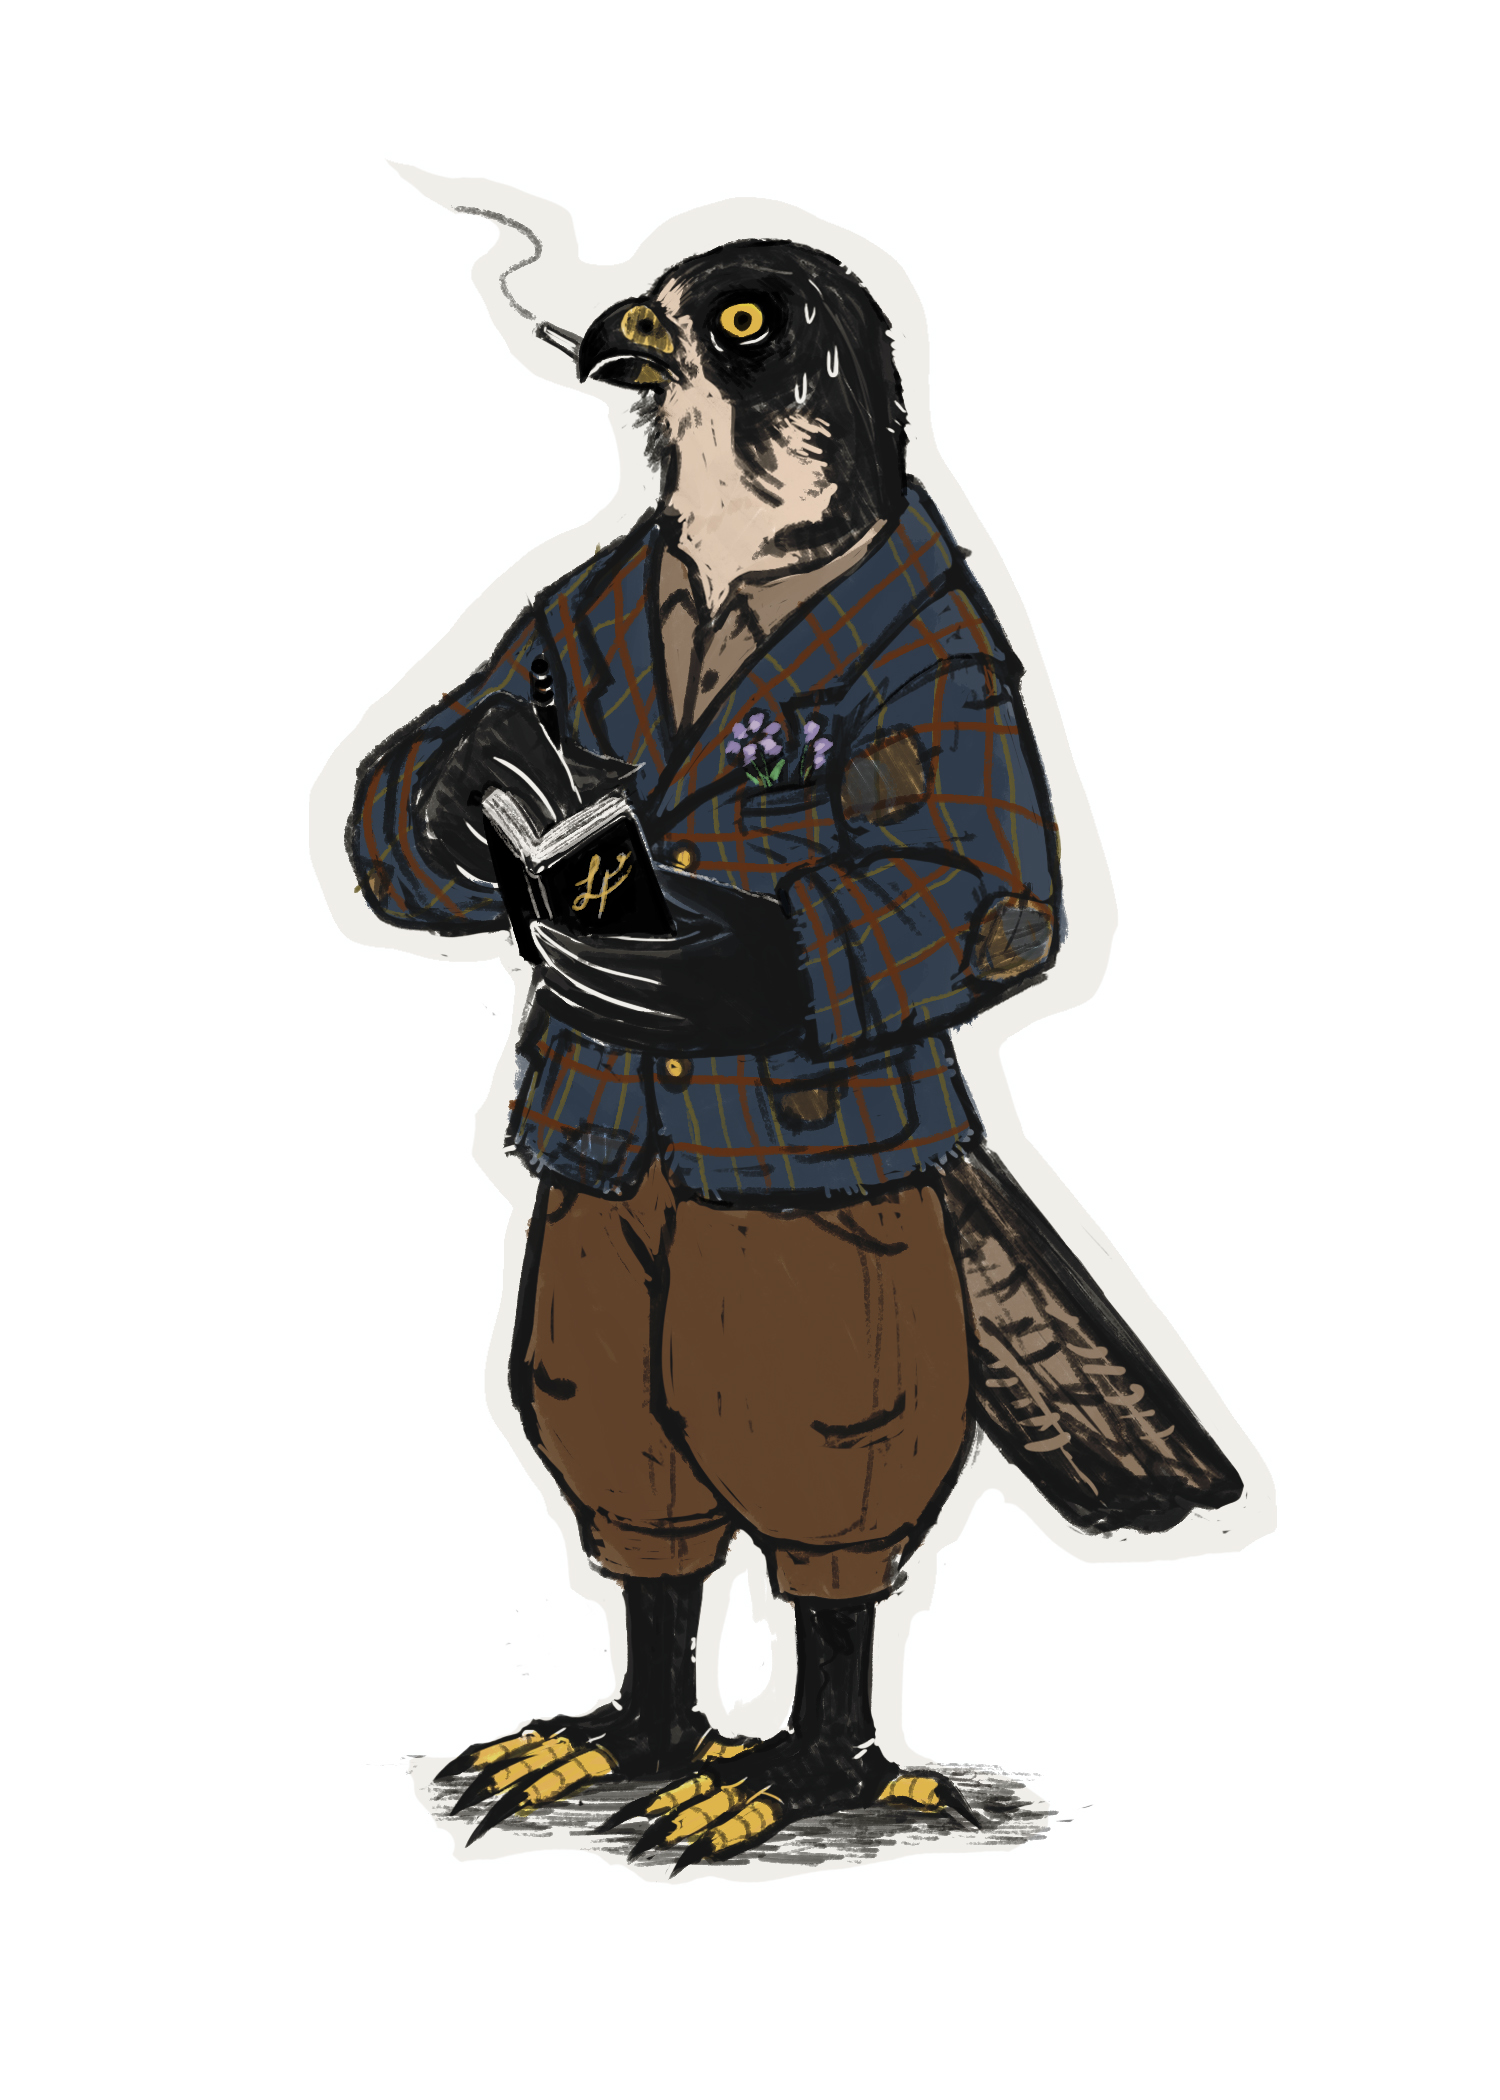 An illustration of Laurus Francoeur, a nervous-looking peregrine falcon in a plaid coat and brown pants. He is smoking a cigarette.